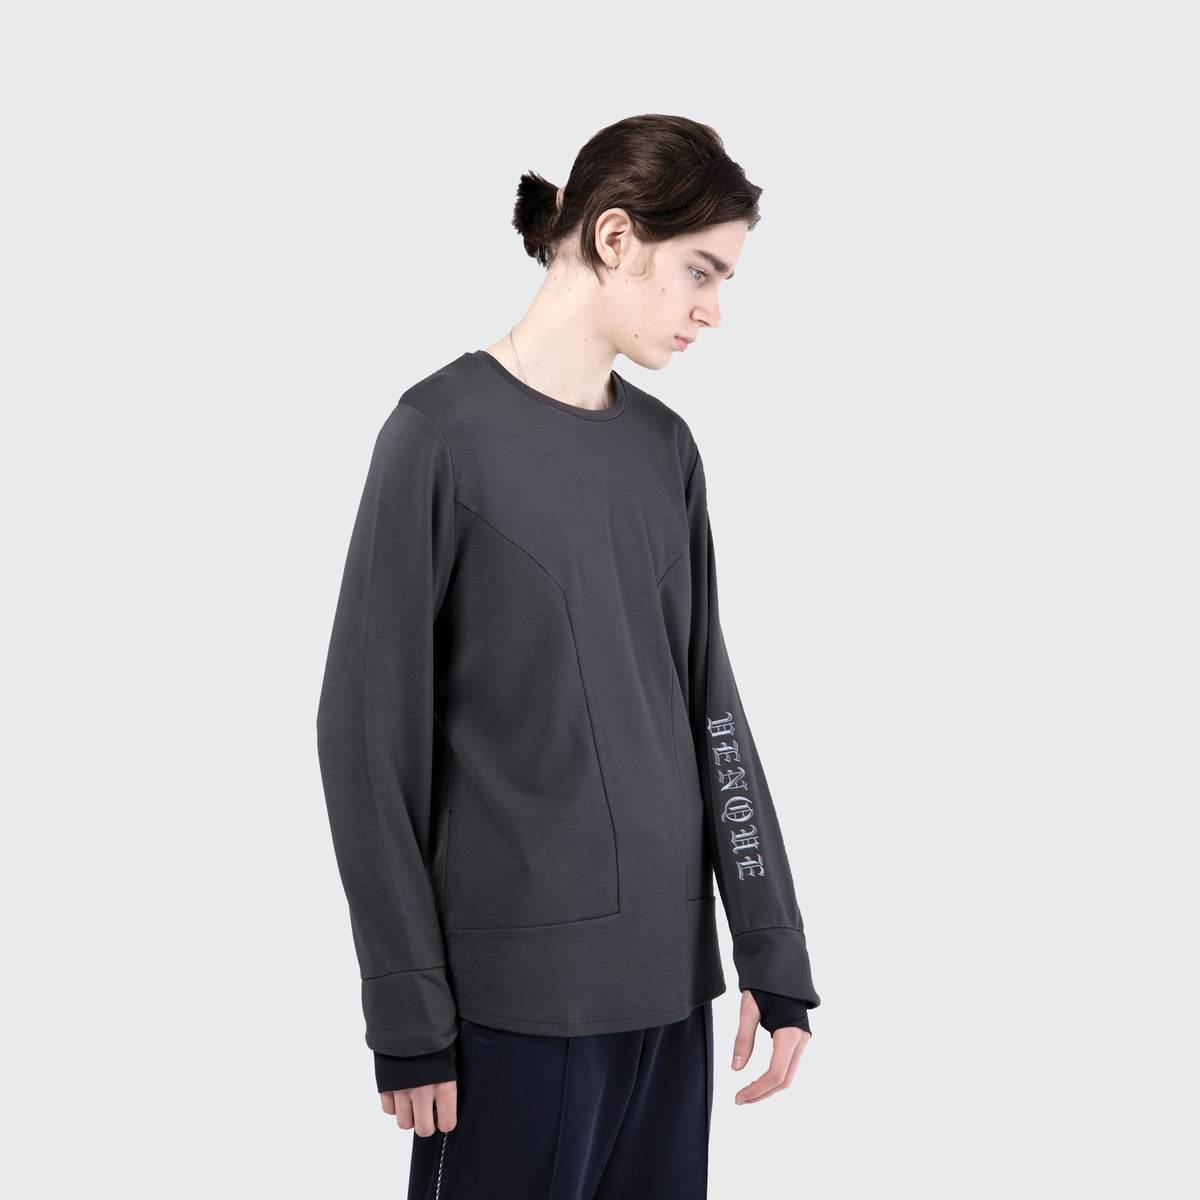 VENQUE Tech Long Sleeve